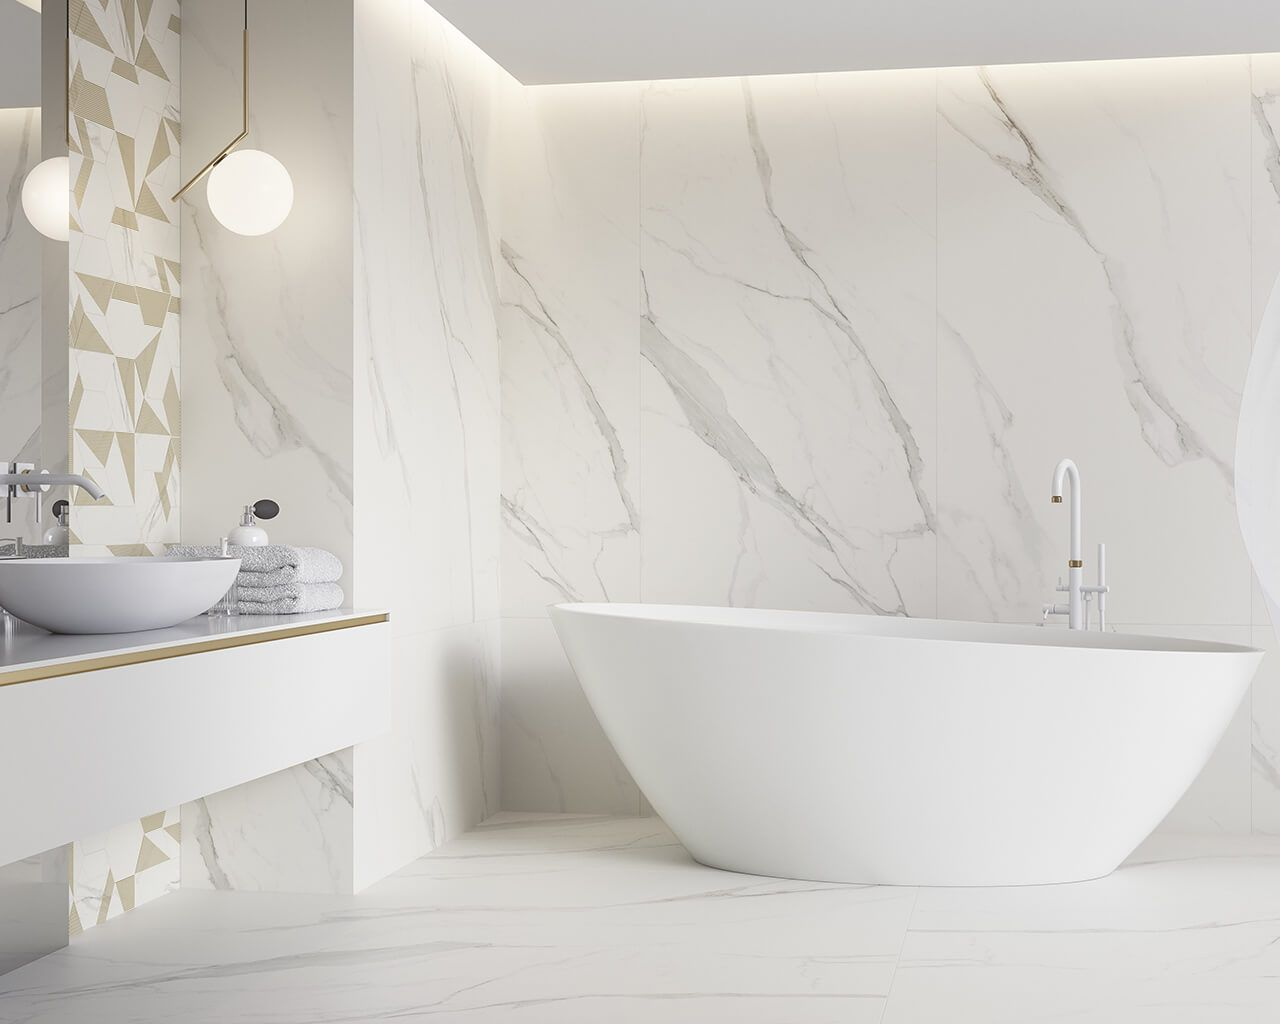 Exclusive bathroom with white marble in the leading role ...